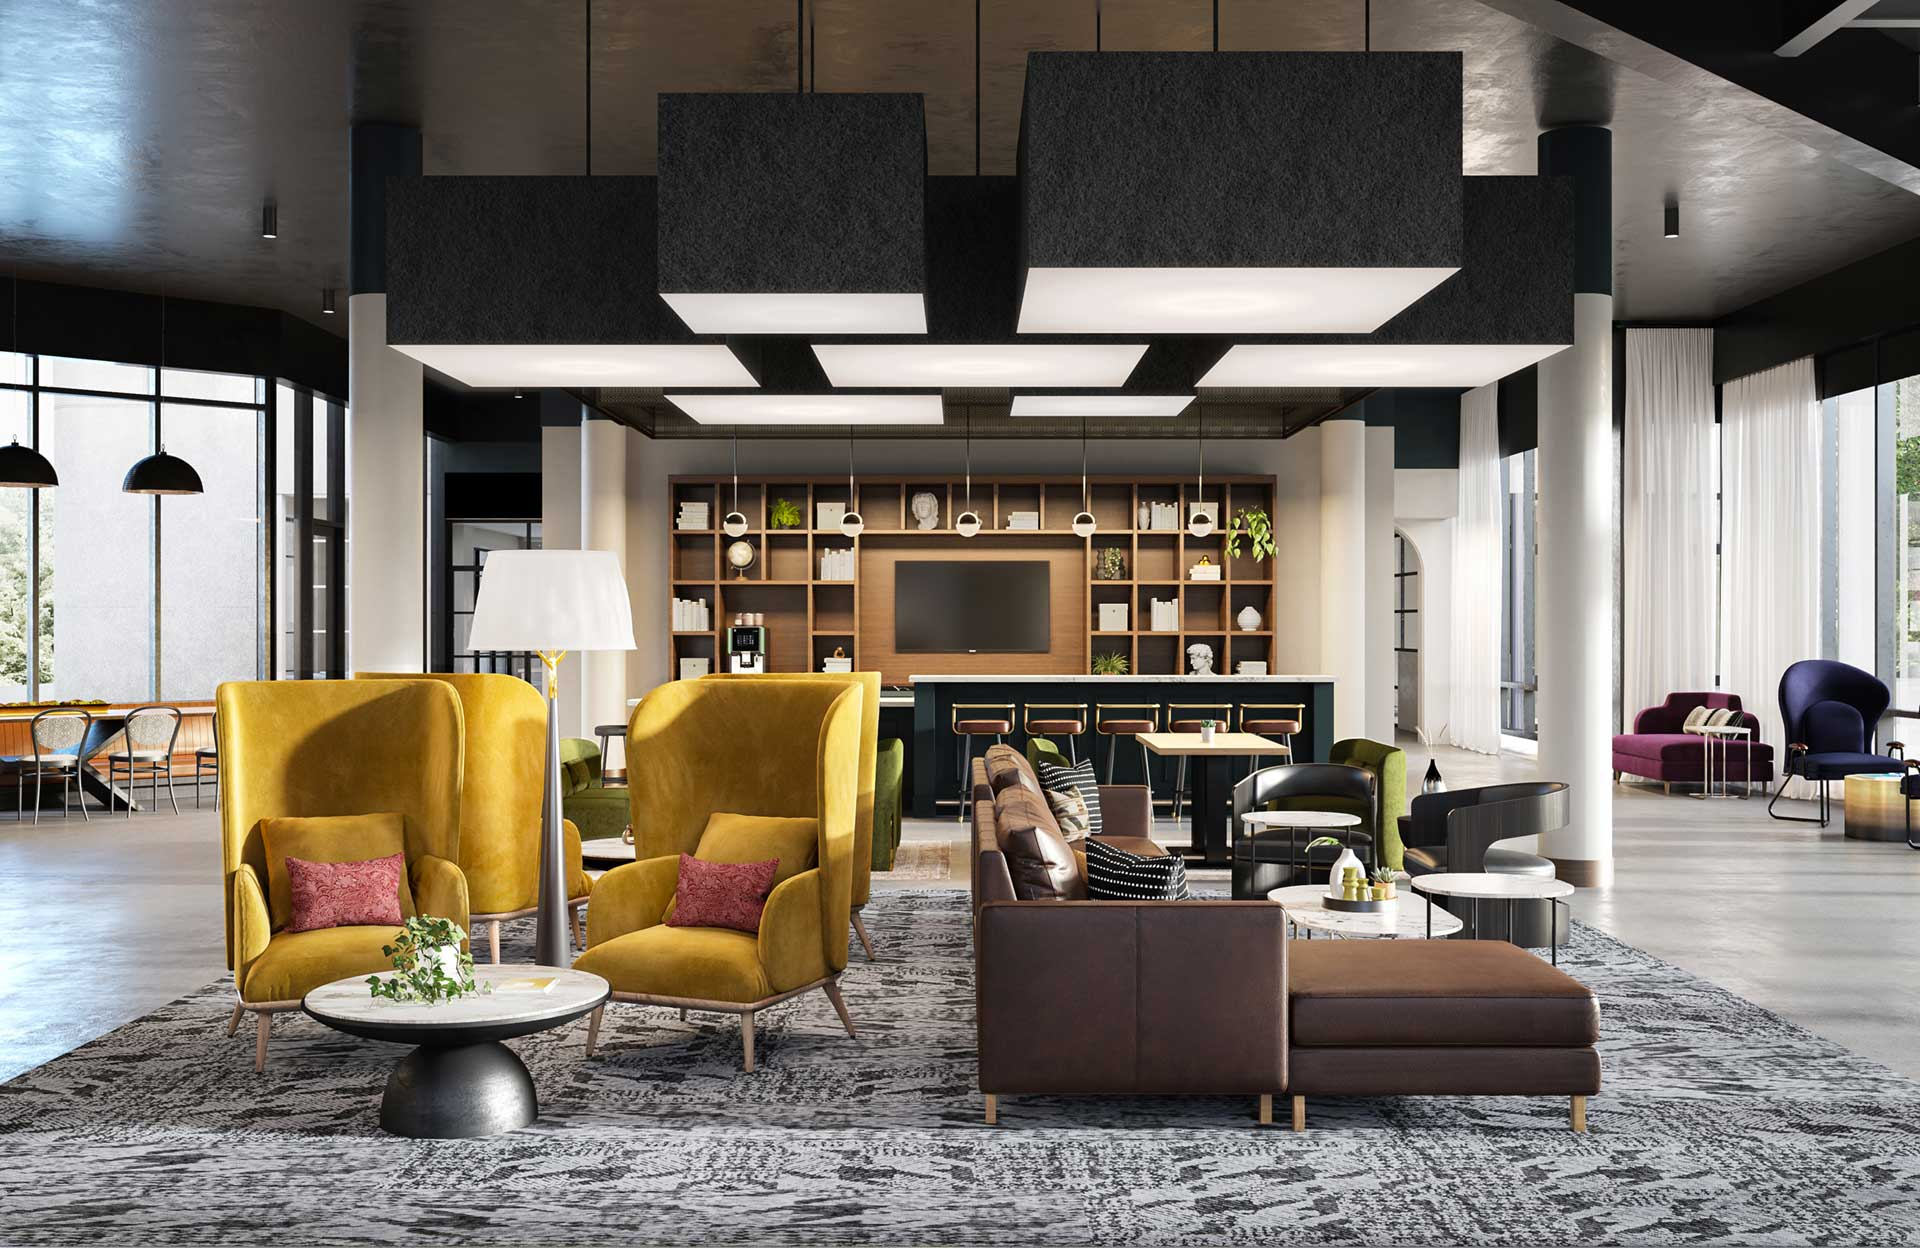 Lobby with different types of chairs